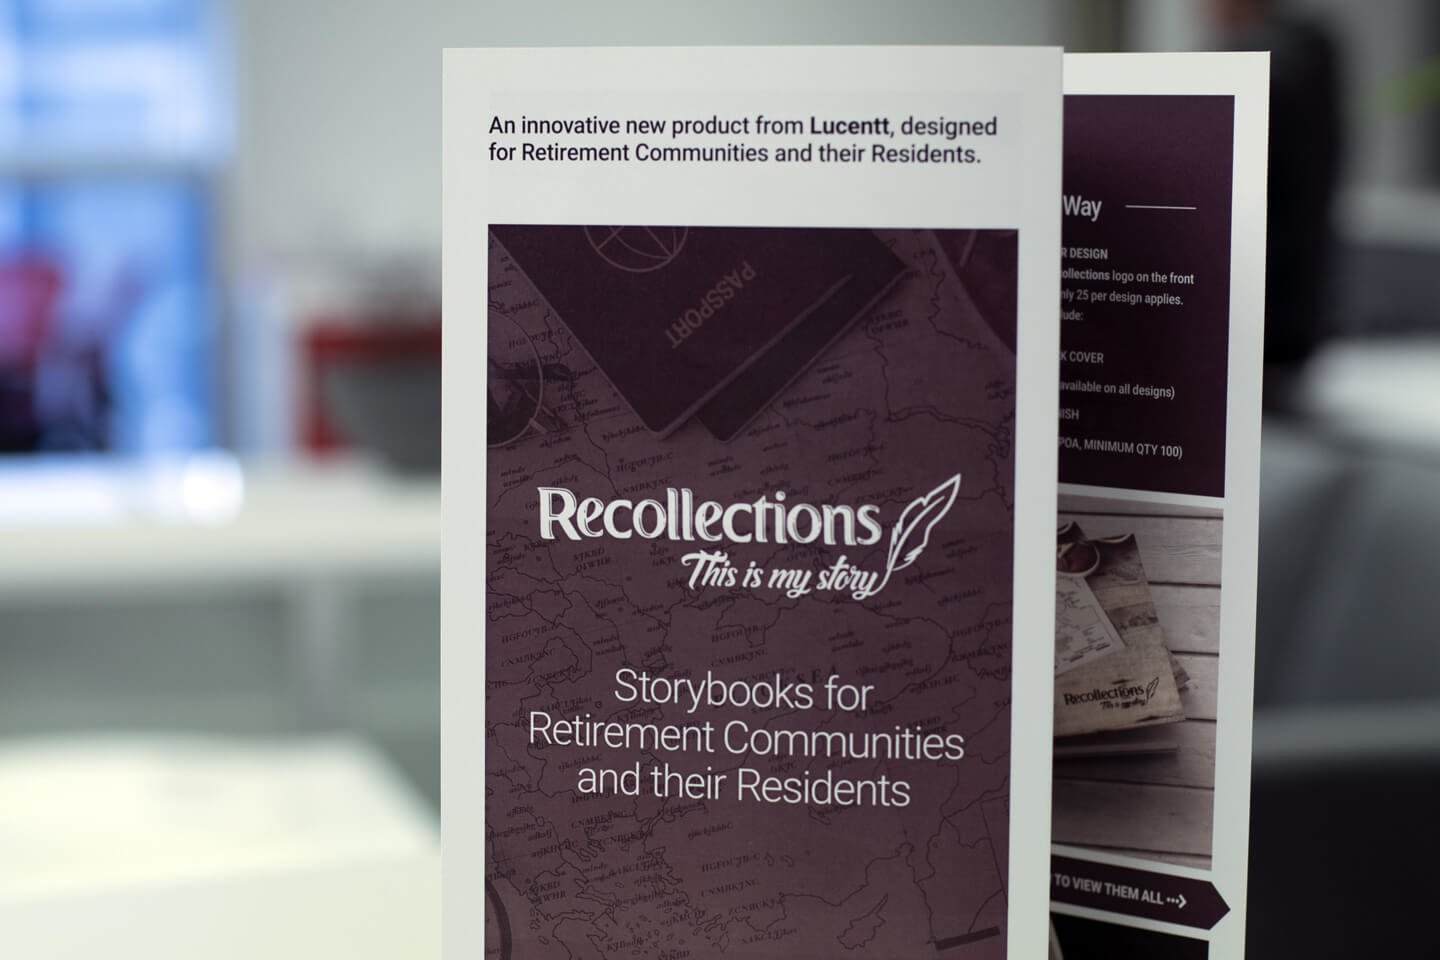 Branding for Recollections